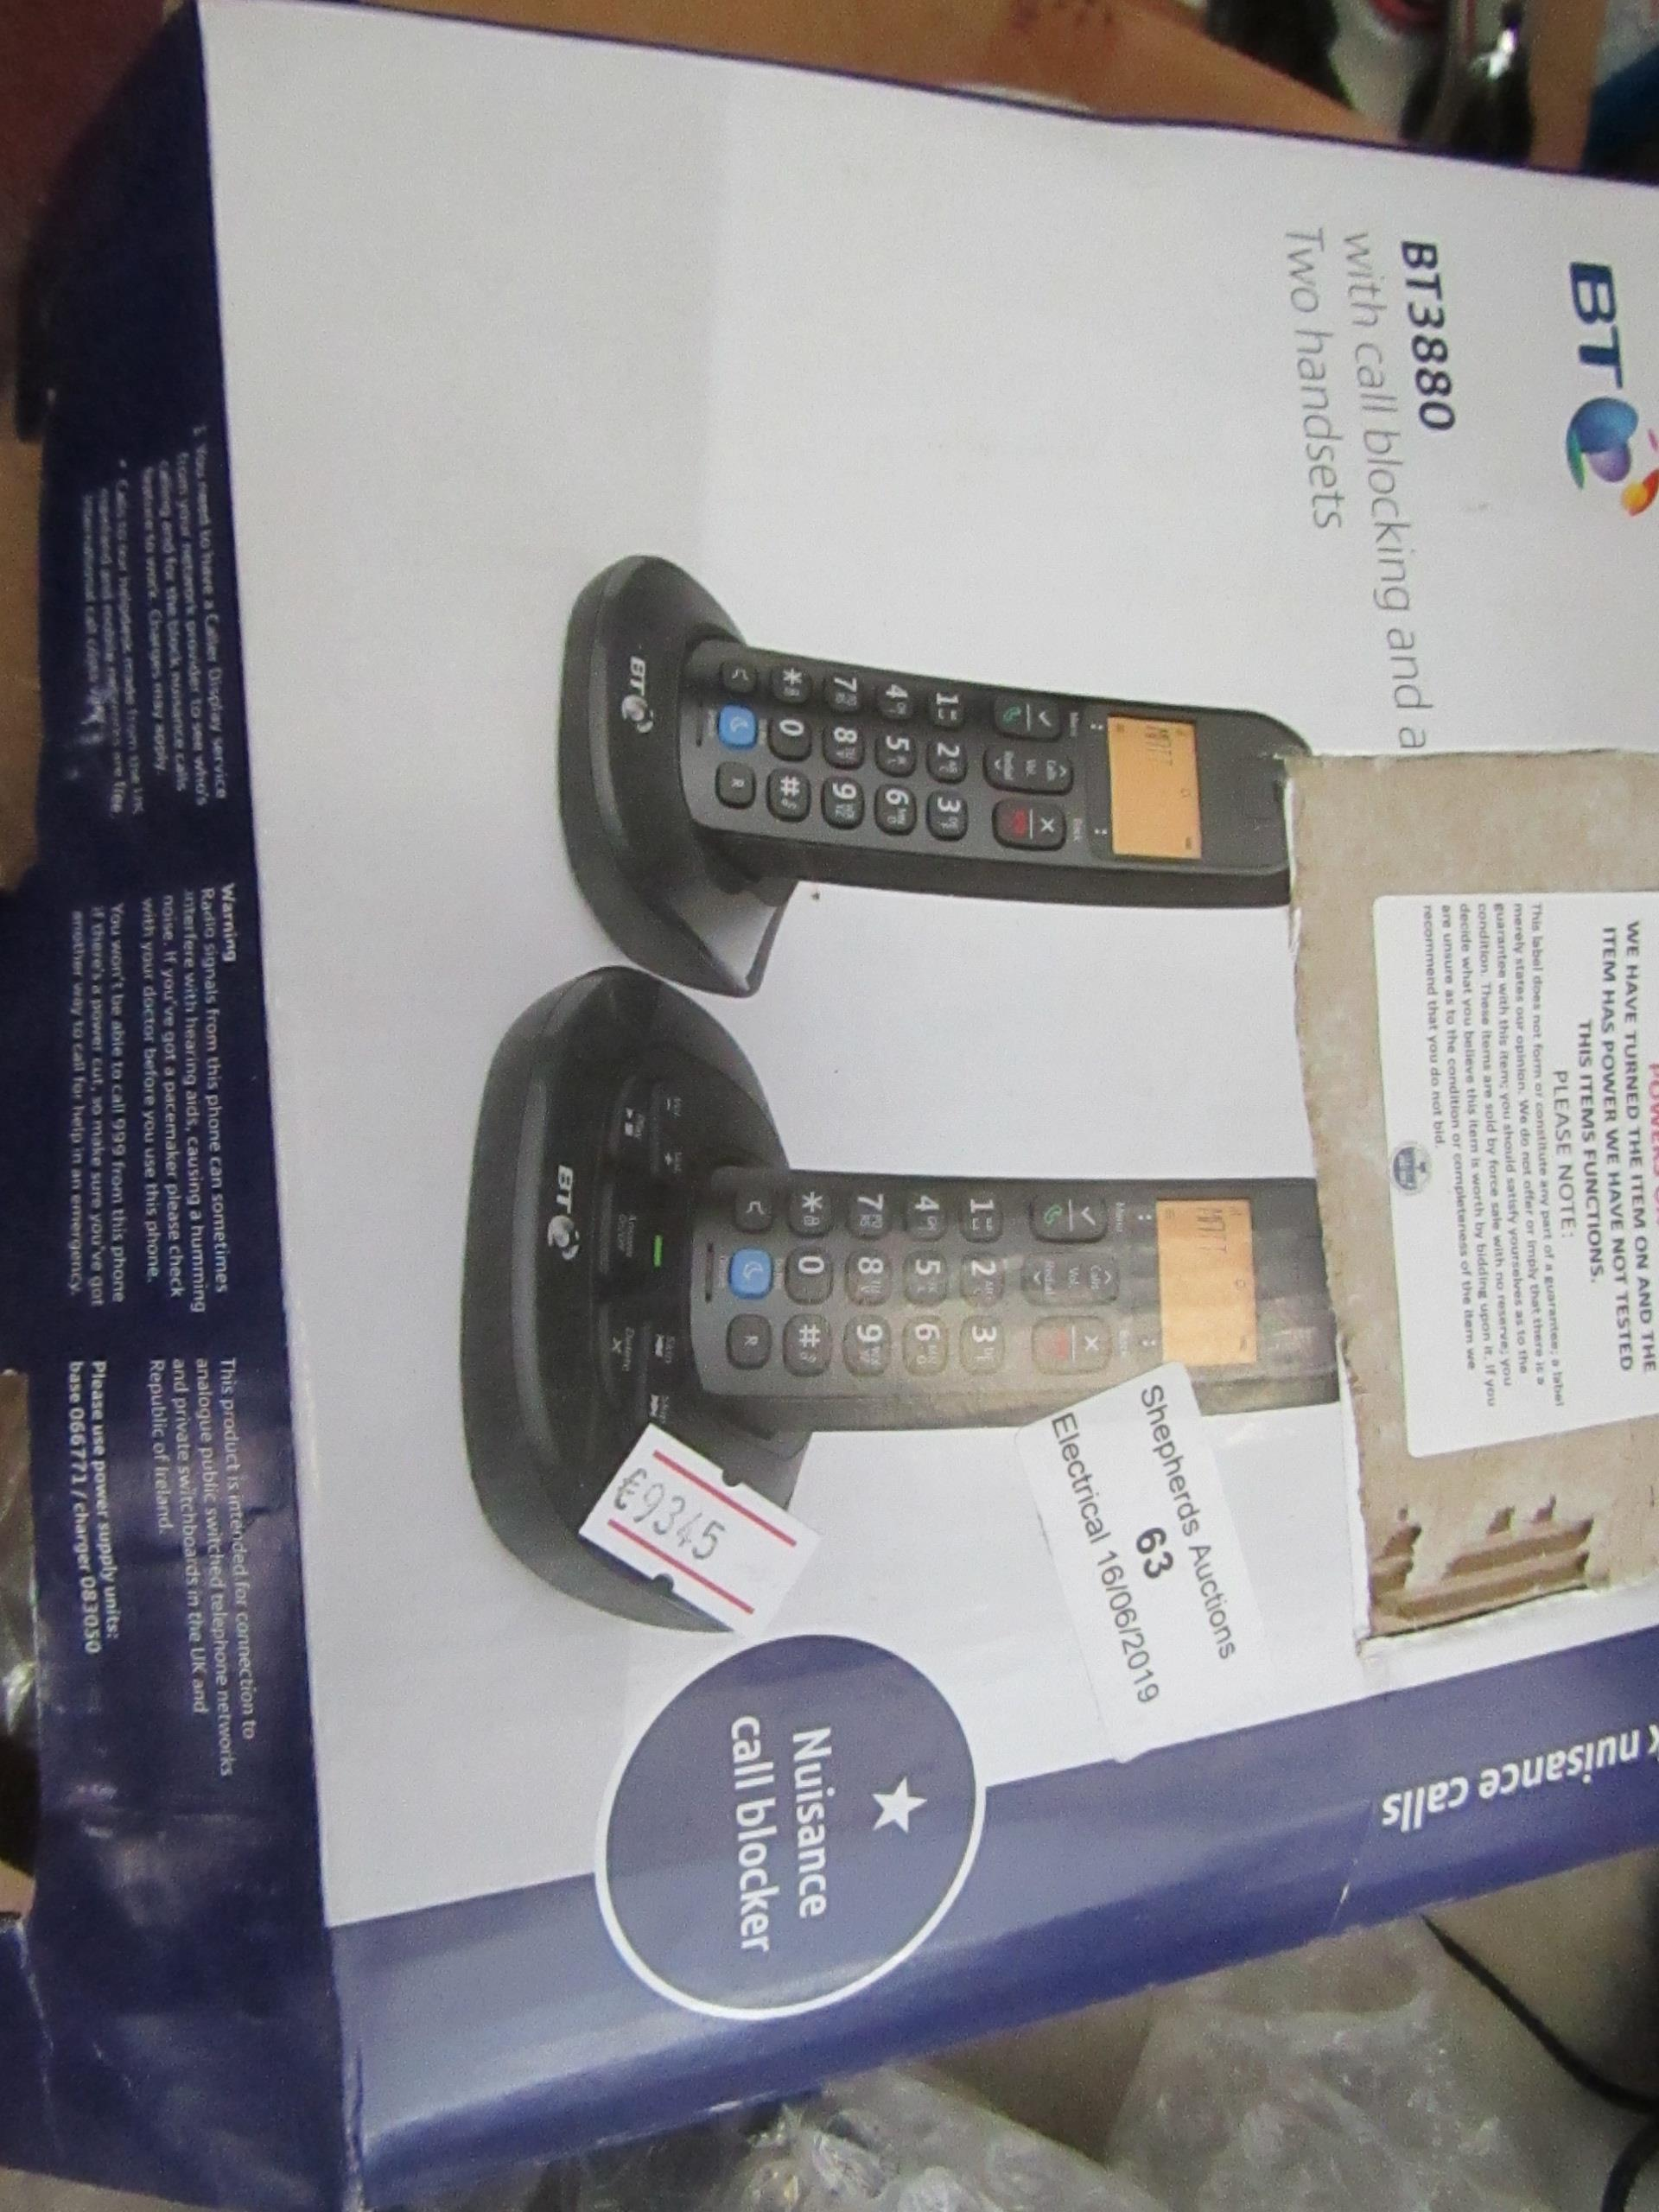 Lot 63 - BT BT3880 digital cordless phone with answering machine and call blocking, complete but untested and